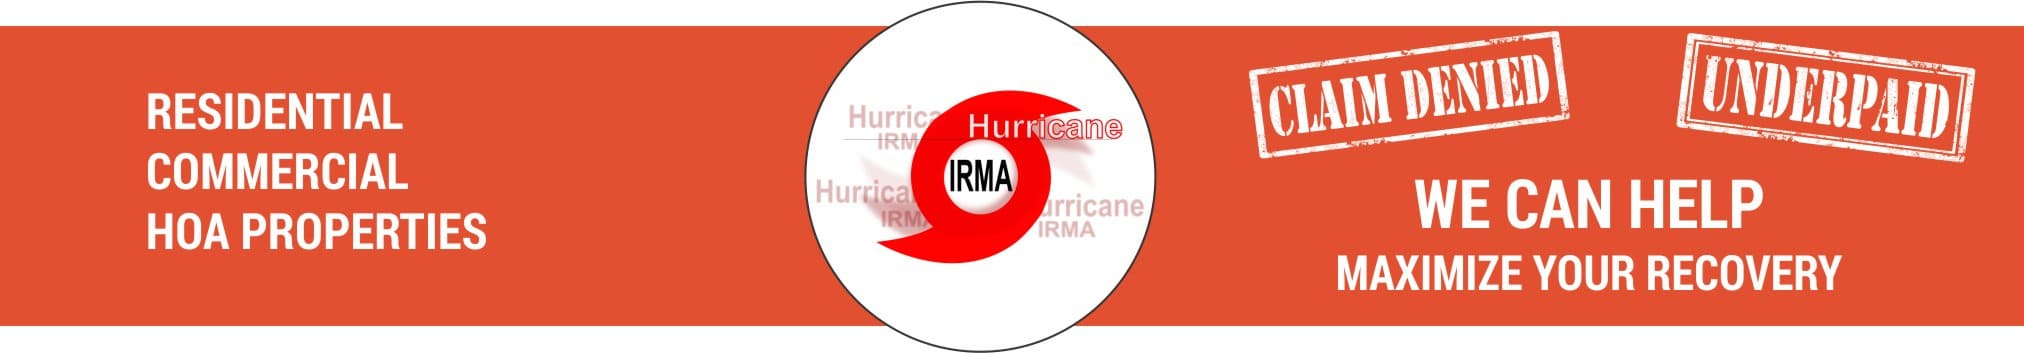 Huricane Irma Public Adjuster Claims Experts